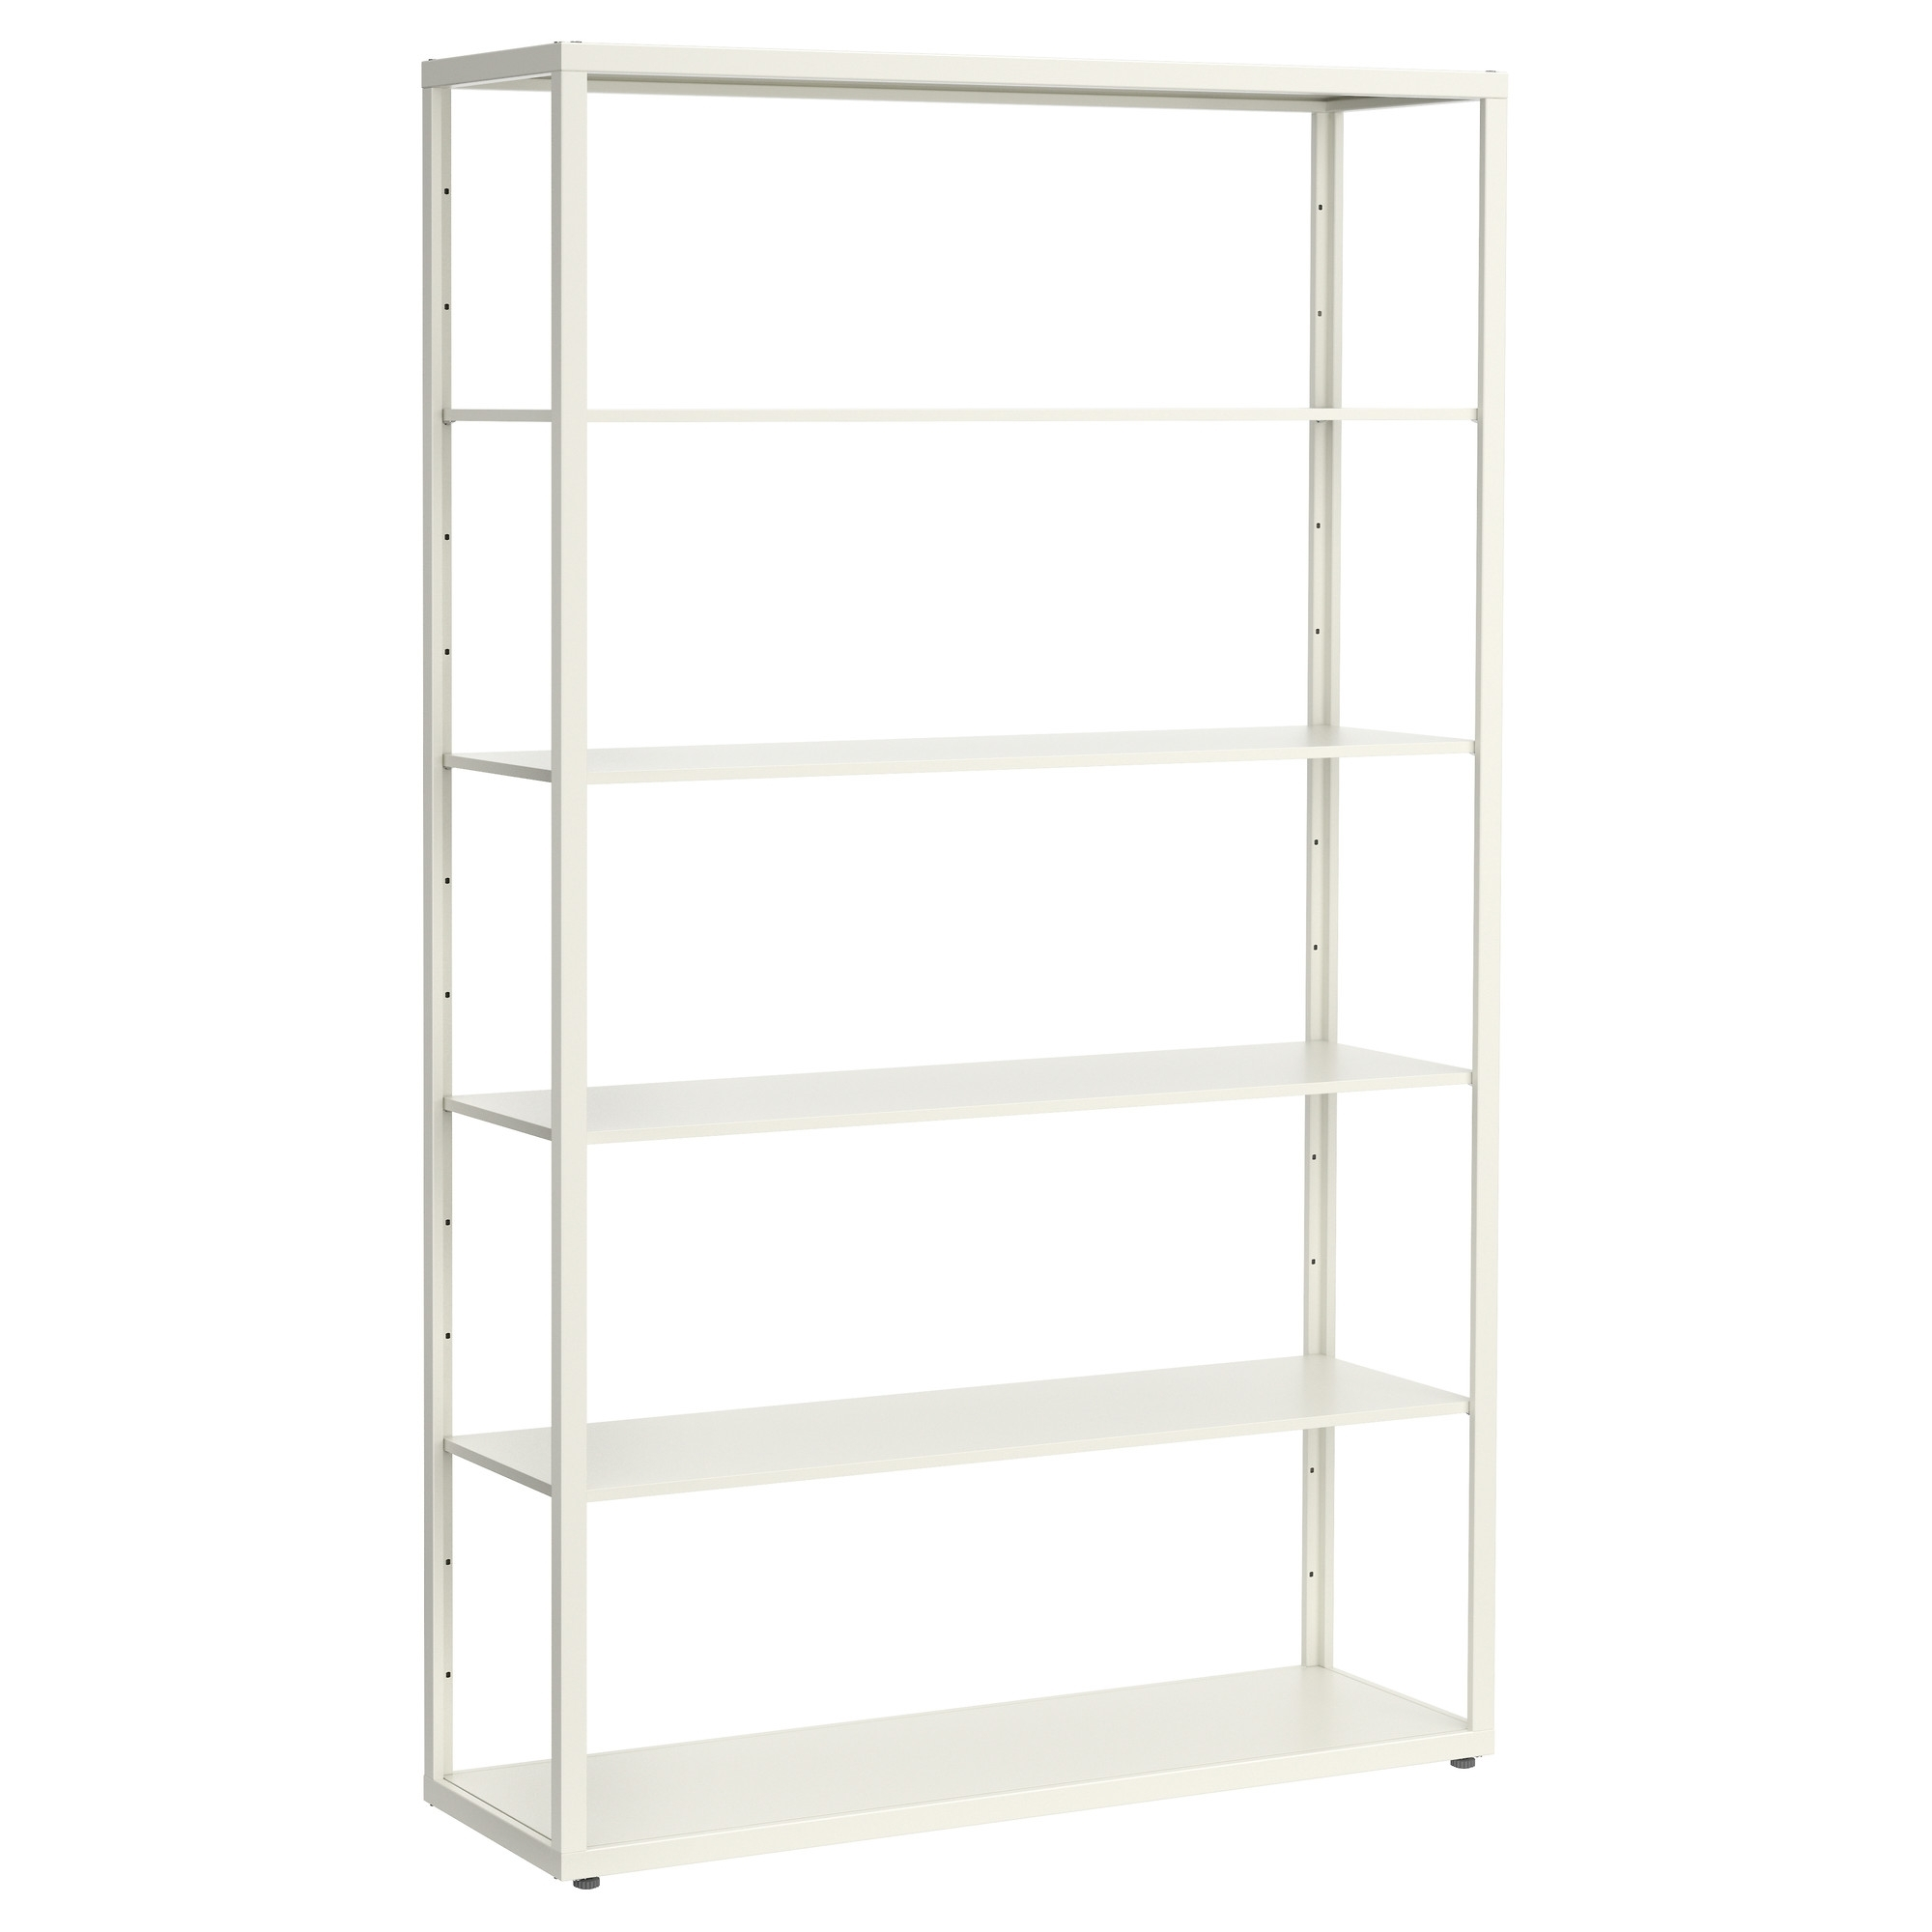 Fjälkinge Shelf Unit – Ikea Pertaining To Popular Ikea White Bookcases (View 11 of 15)